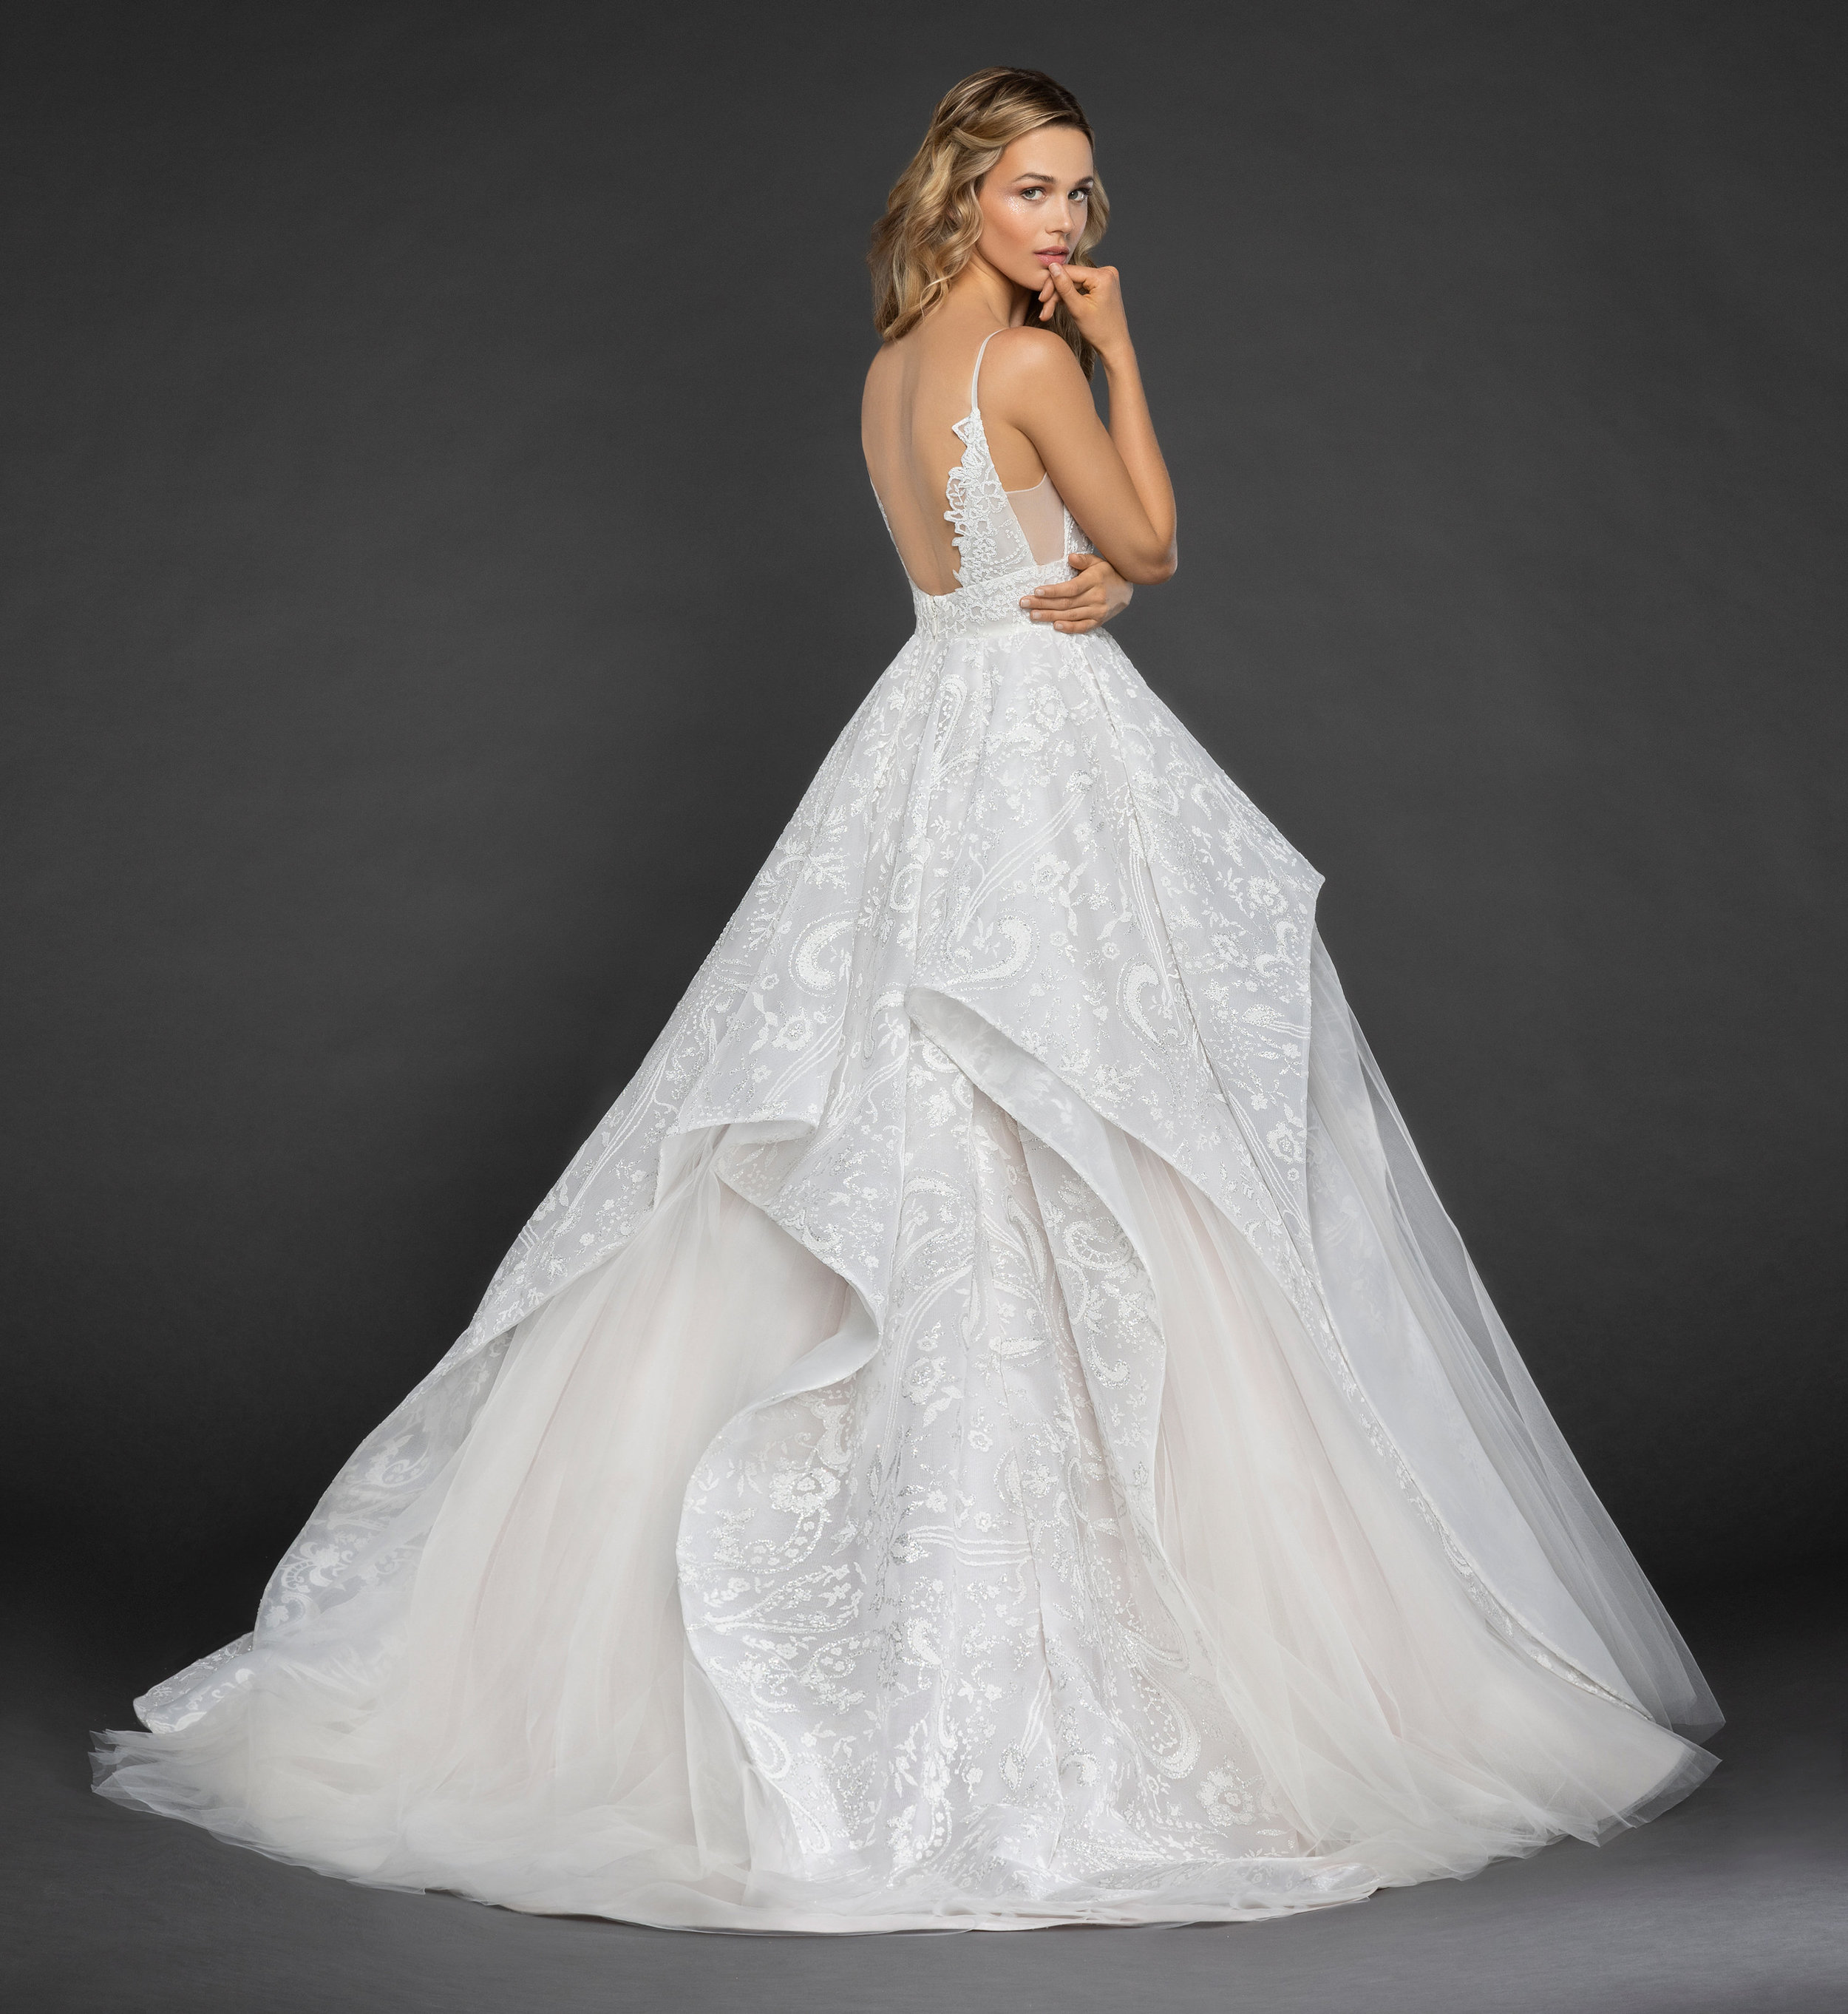 hayley-paige-bridal-fall-2018-style-6850-markle_3.jpg